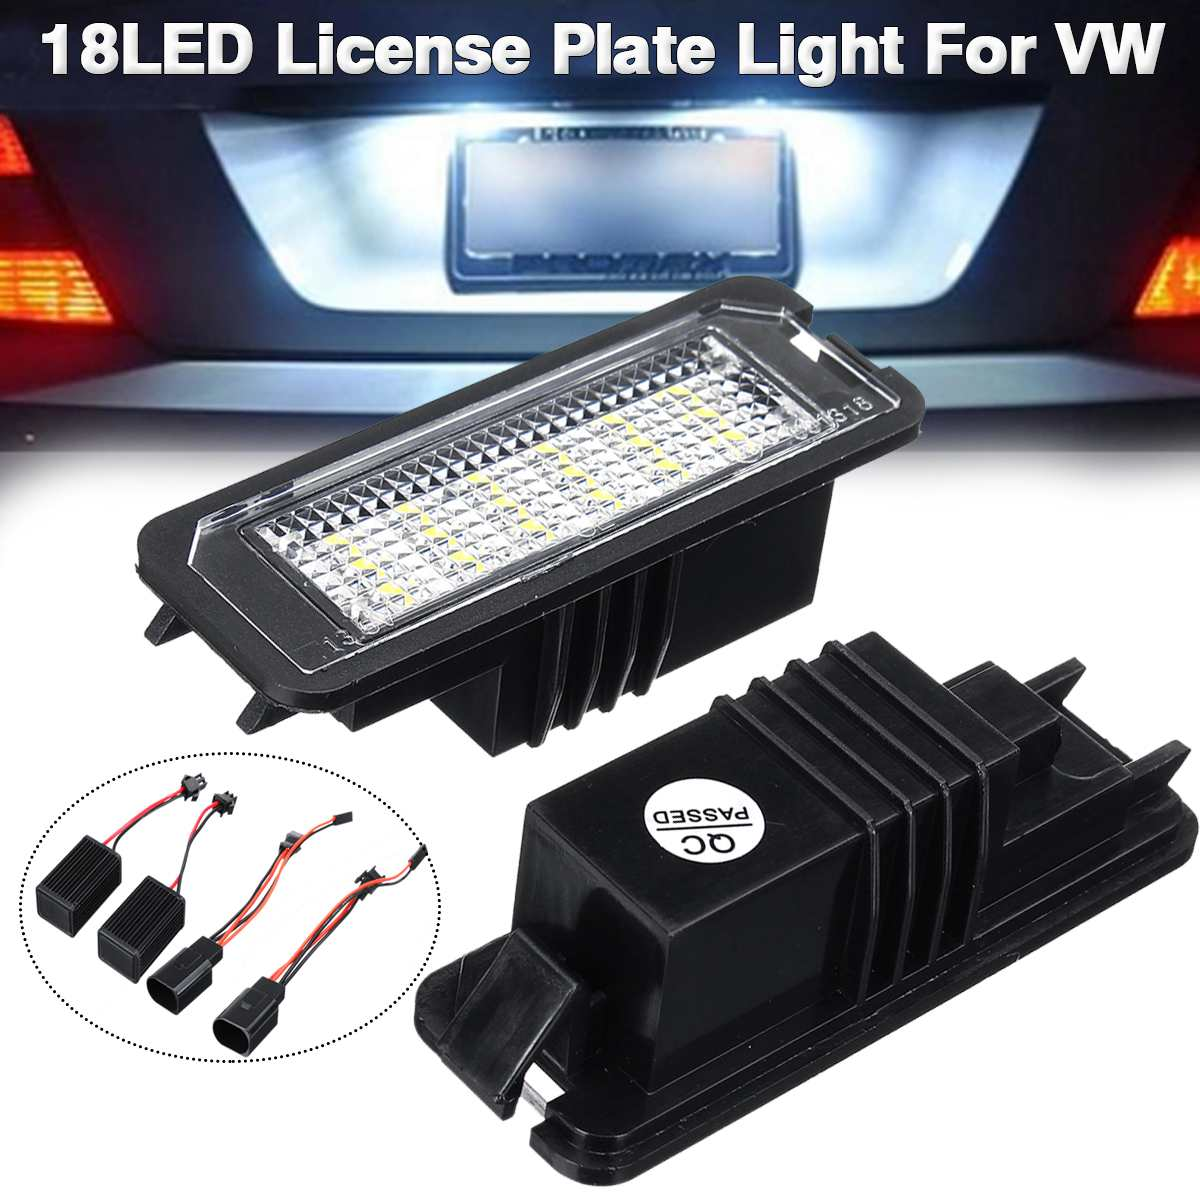 2pcs Universal 12V 18 <font><b>LED</b></font> Car Number License Tail Plate <font><b>Lights</b></font> <font><b>Light</b></font> Bulb For VW <font><b>GOLF</b></font> <font><b>4</b></font> 5 6 7 6R Passat B6 Lupo Scirocco Polo image